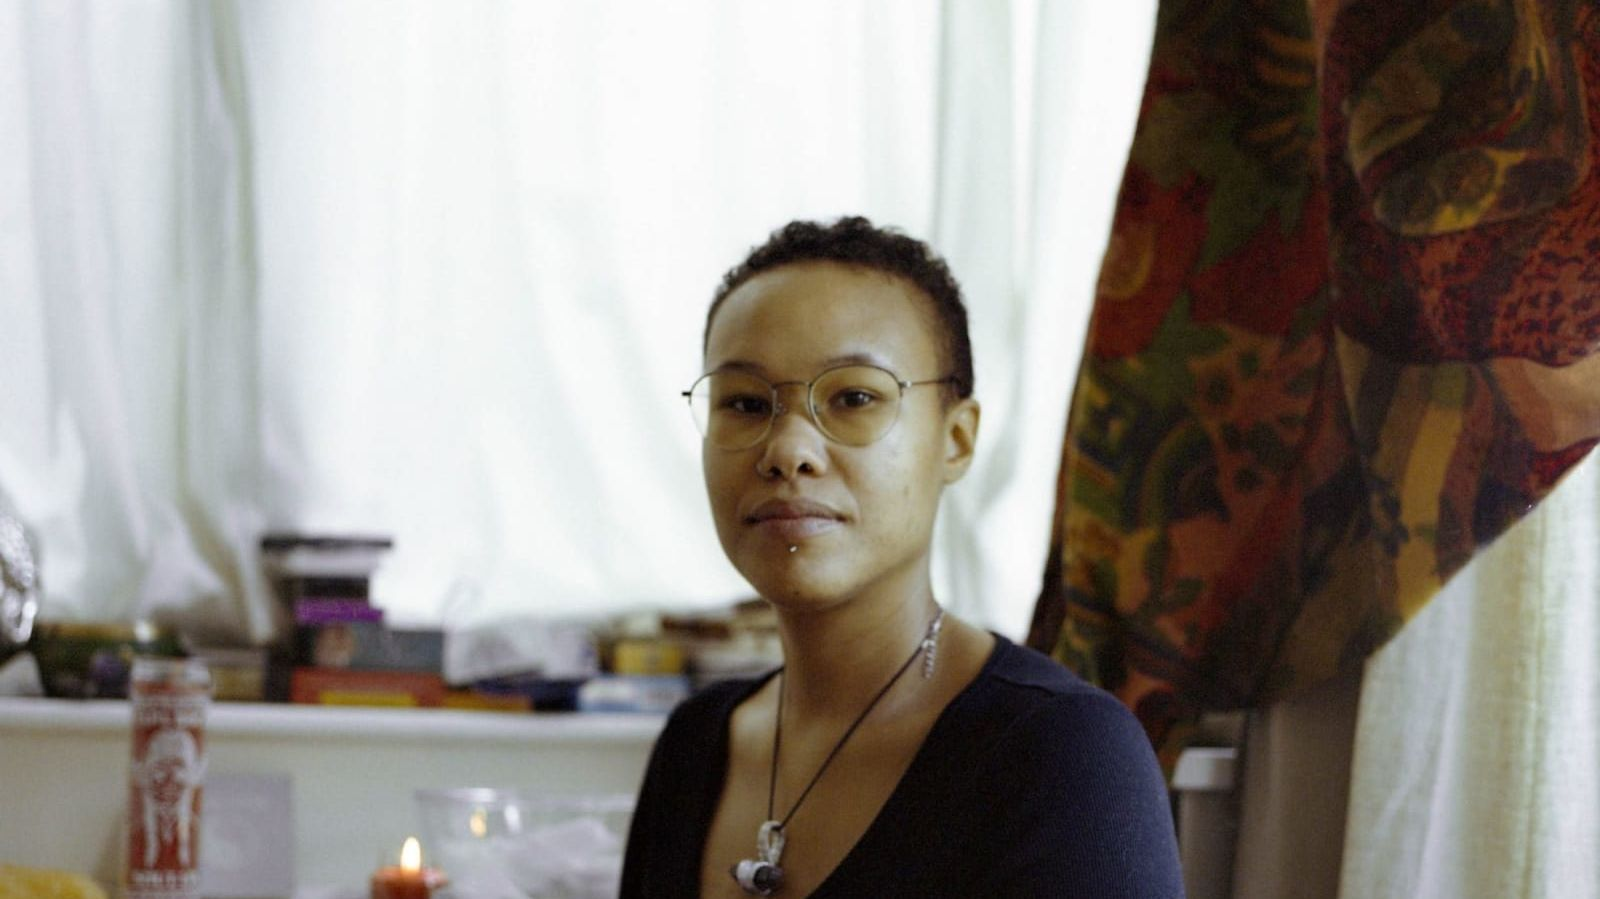 Portrait of a black woman called 'Corinna' taken in her home by Harriet Moore.